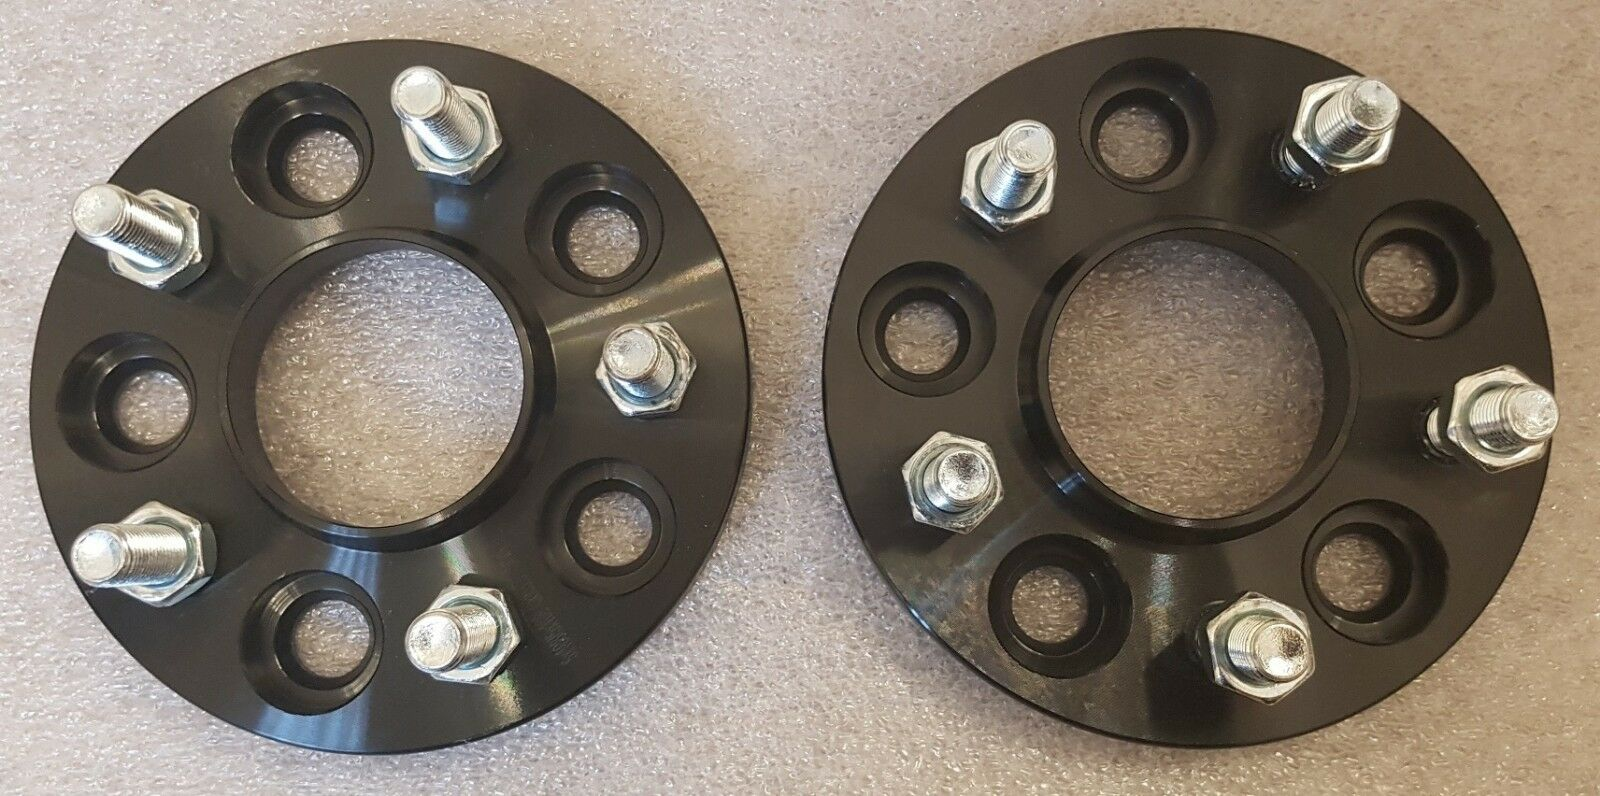 SD Forged Hubcentric Wheel Spacers for Ford Focus mk2 RS 5x108 15mm